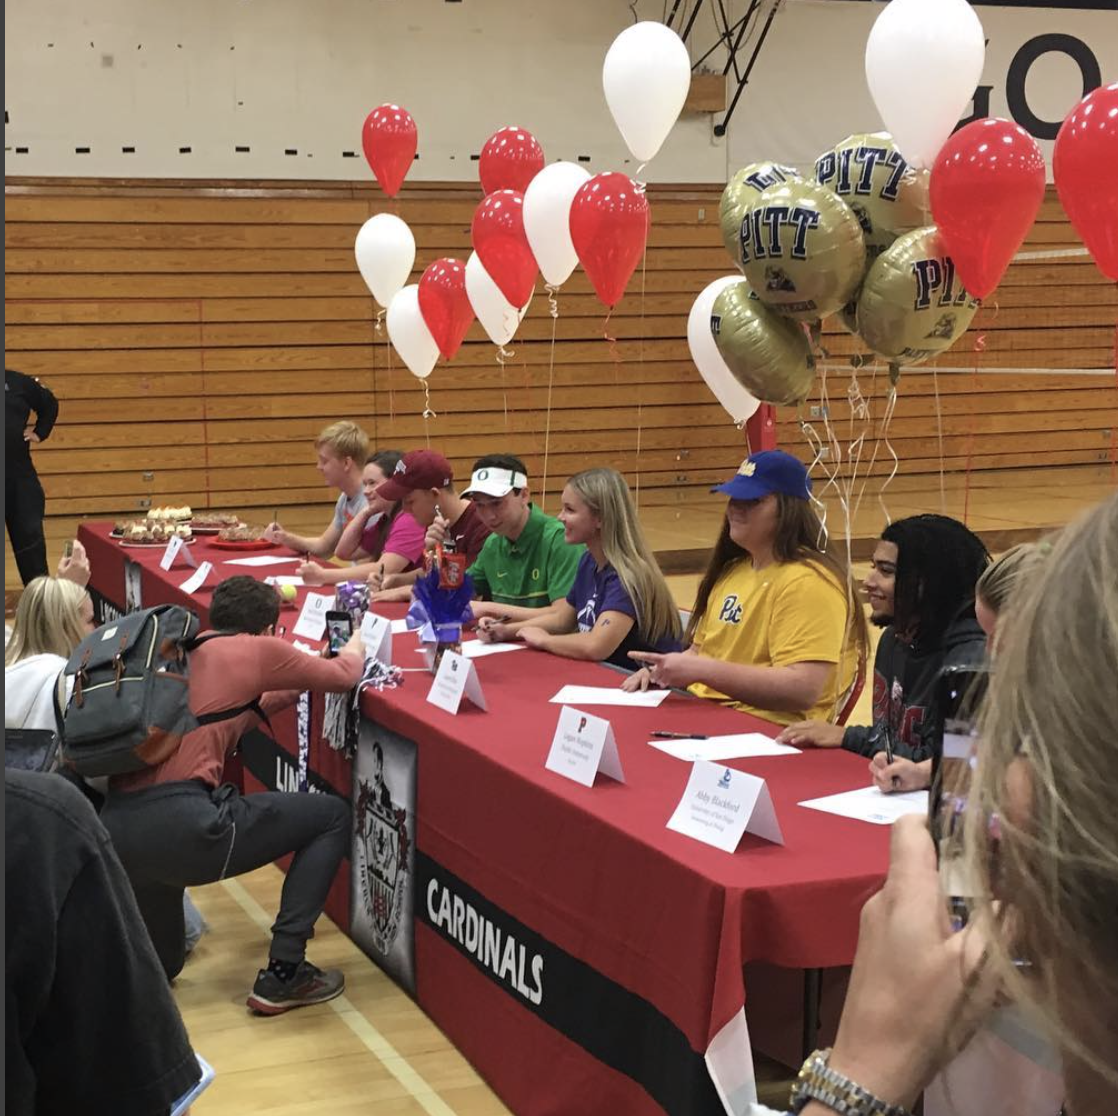 Friends, family and coaches gathered in the gym Nov. 14 during lunch to honor and celebrate senior student athletes, as they signed their commitment to play in college.